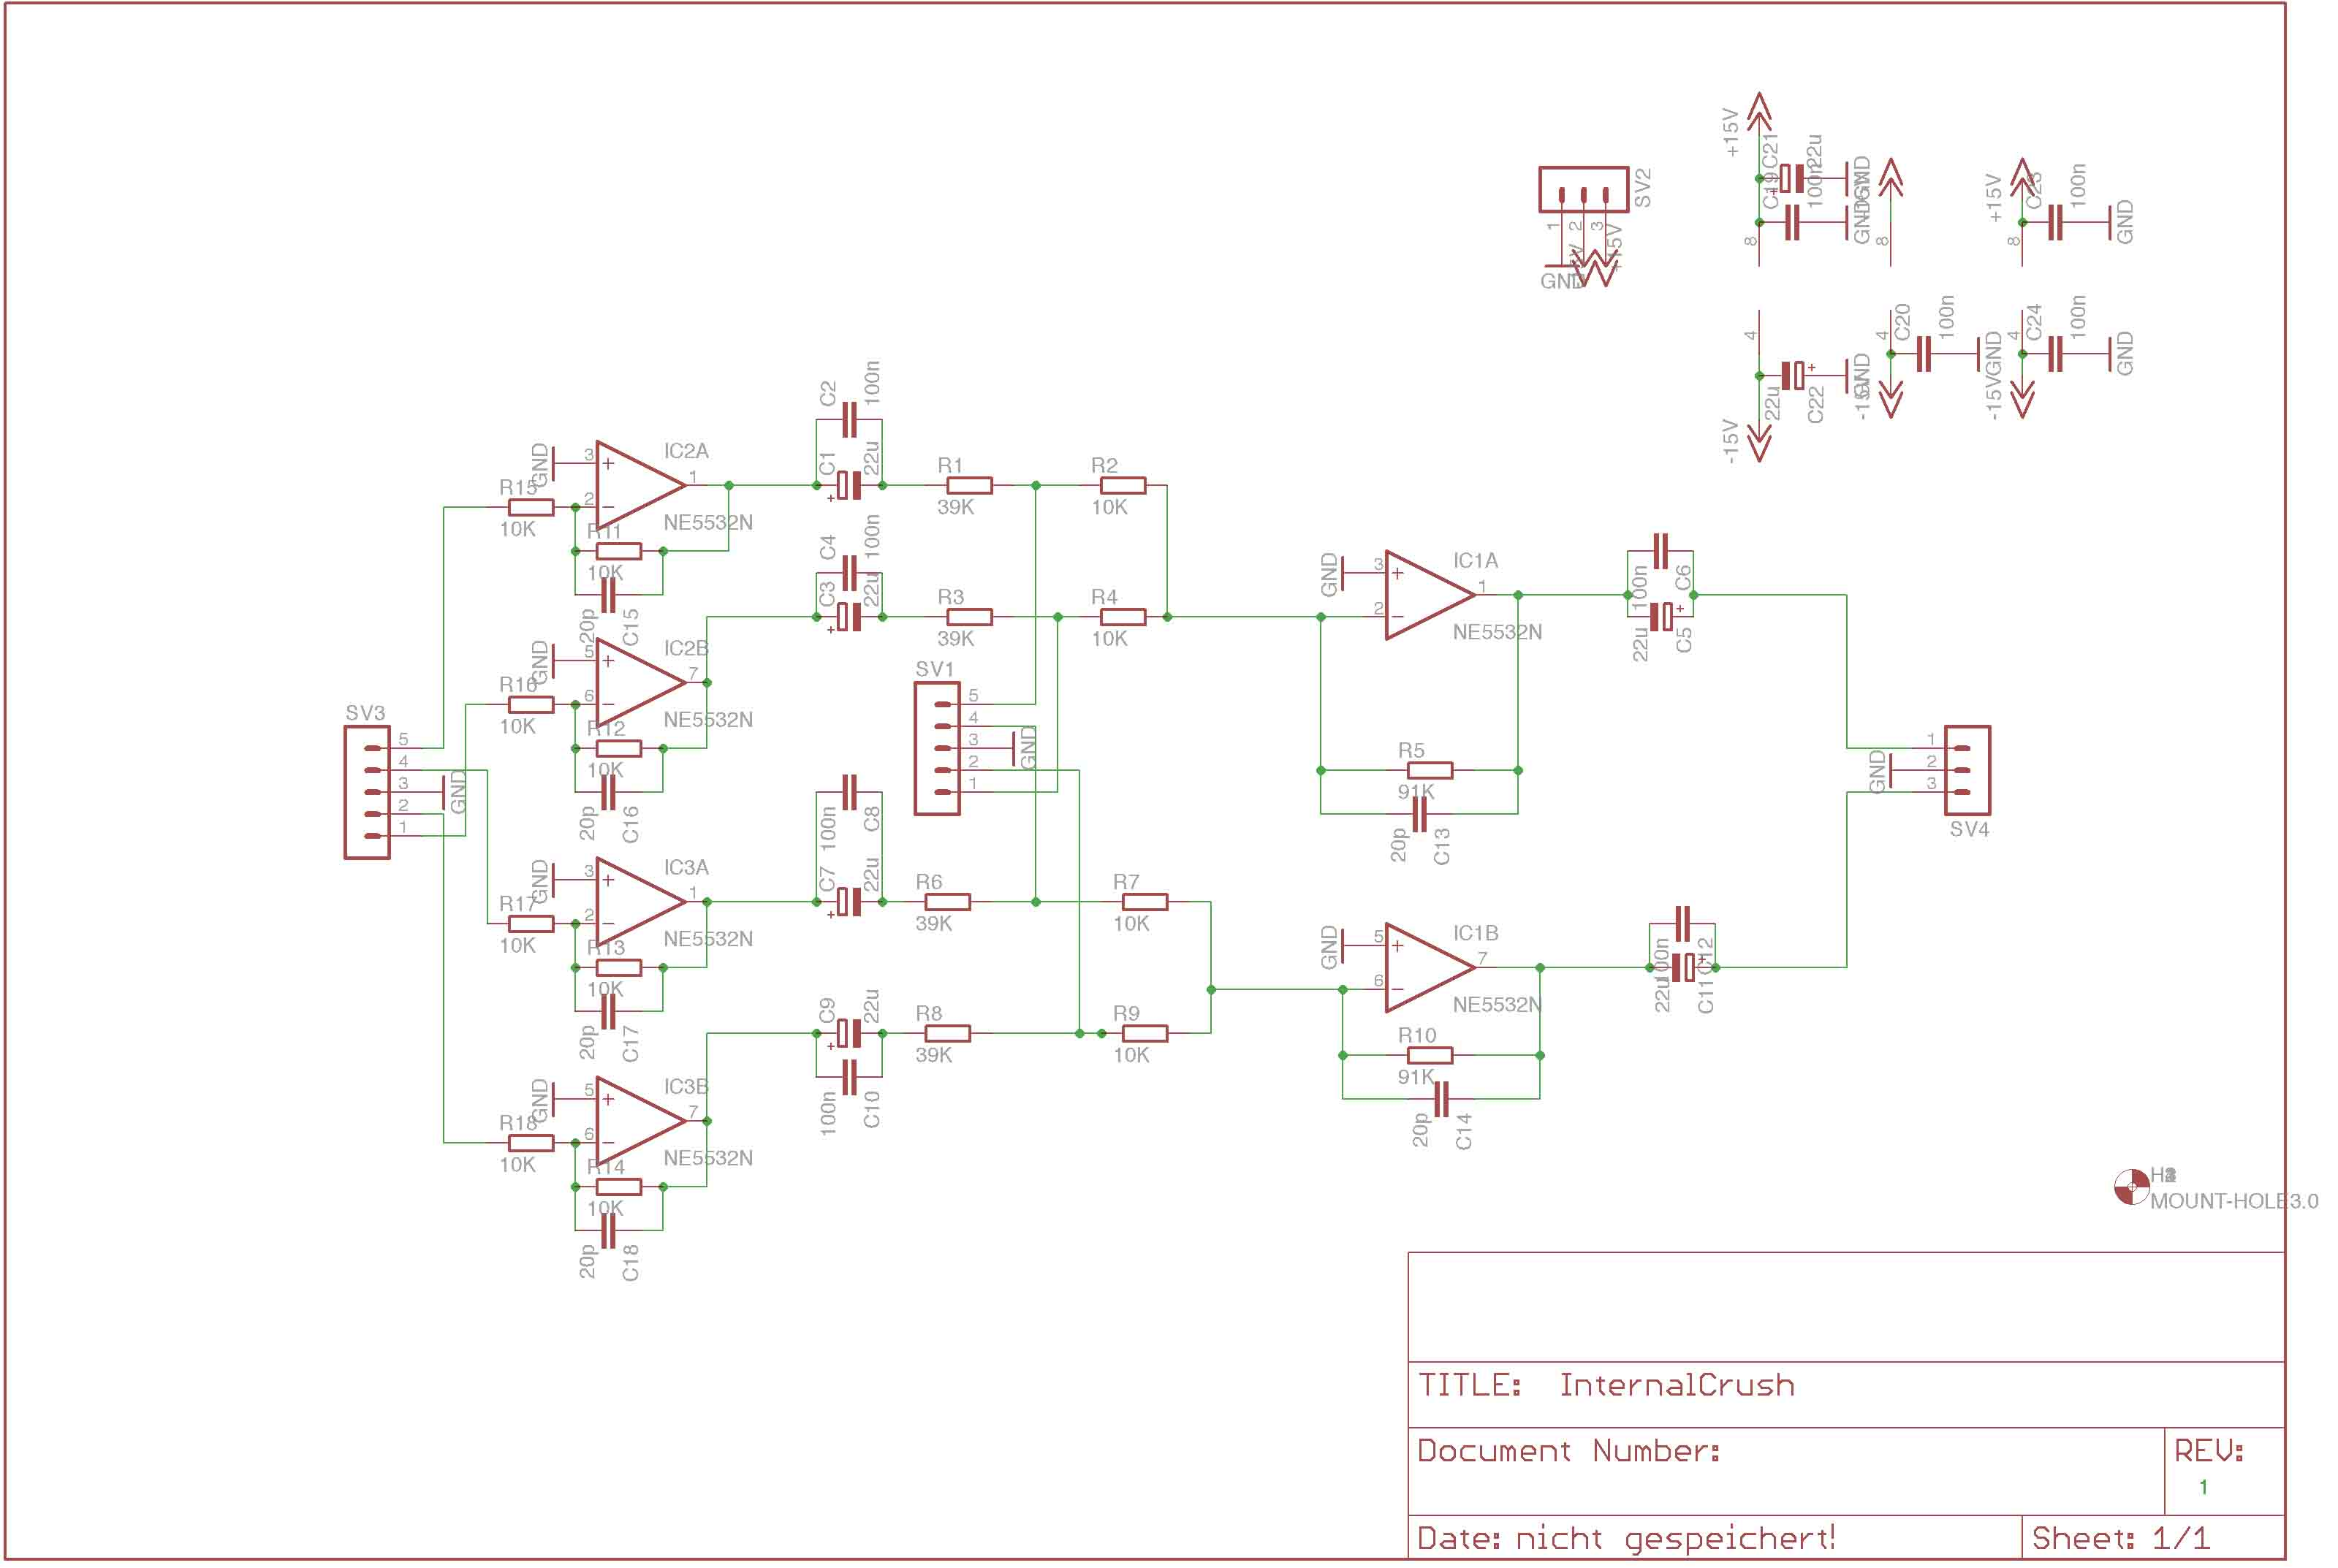 Basic Circuit Questions Opamp Audio Mixer Diagram With Ne5532 Basically Two Pair Of Line Receivers Same As Previously Shown And Its Outputs Going To A Dual Gang 10k Pot Conn 5 In The Schematic Done